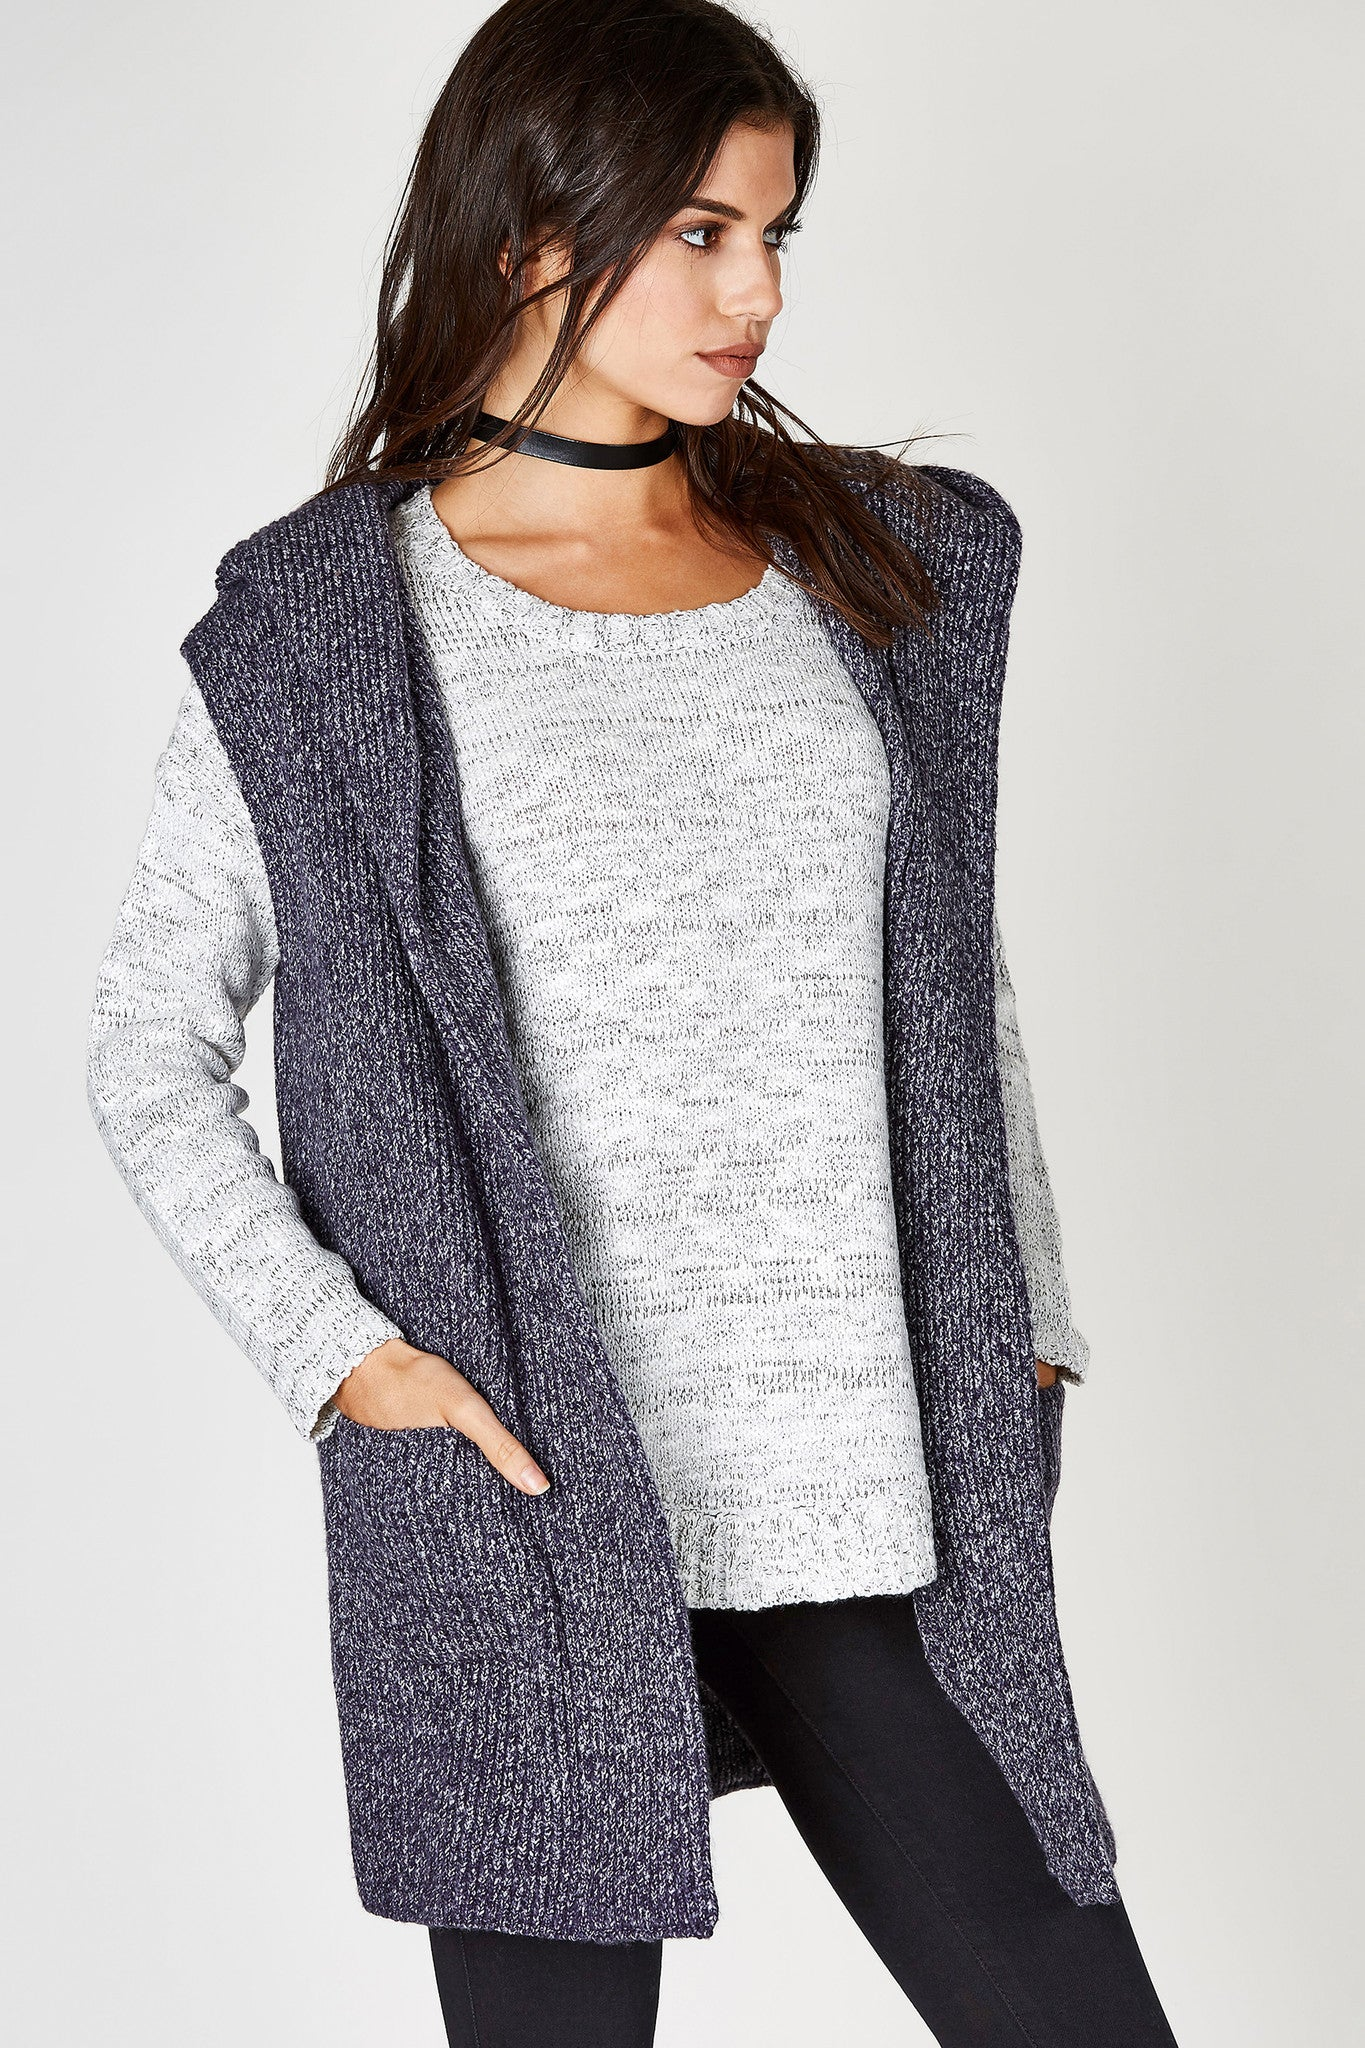 An amazing knitted vest, perfect for transitioning into Fall! Great blend of materials for a soft, stretchy finish. Two front pockets to keep your hands cozy with a clean open front. Hood attached to keep your head warm while keeping your lookin' stylish!